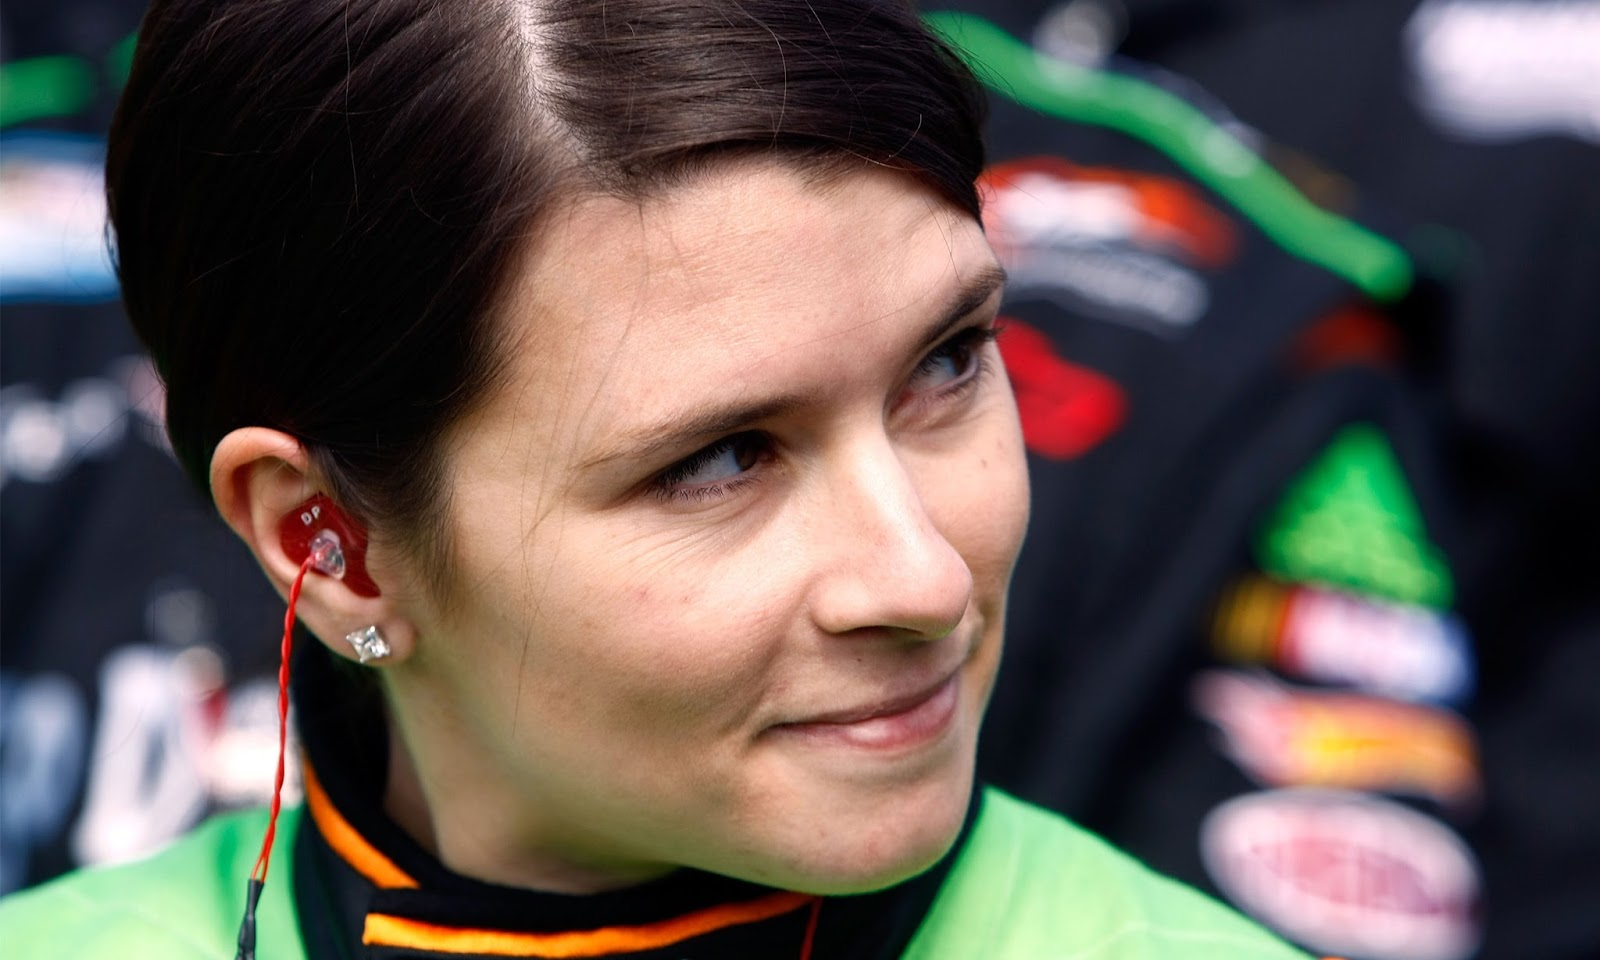 danica patrick hd wallpapers hd wallpapers high definition free background. Black Bedroom Furniture Sets. Home Design Ideas